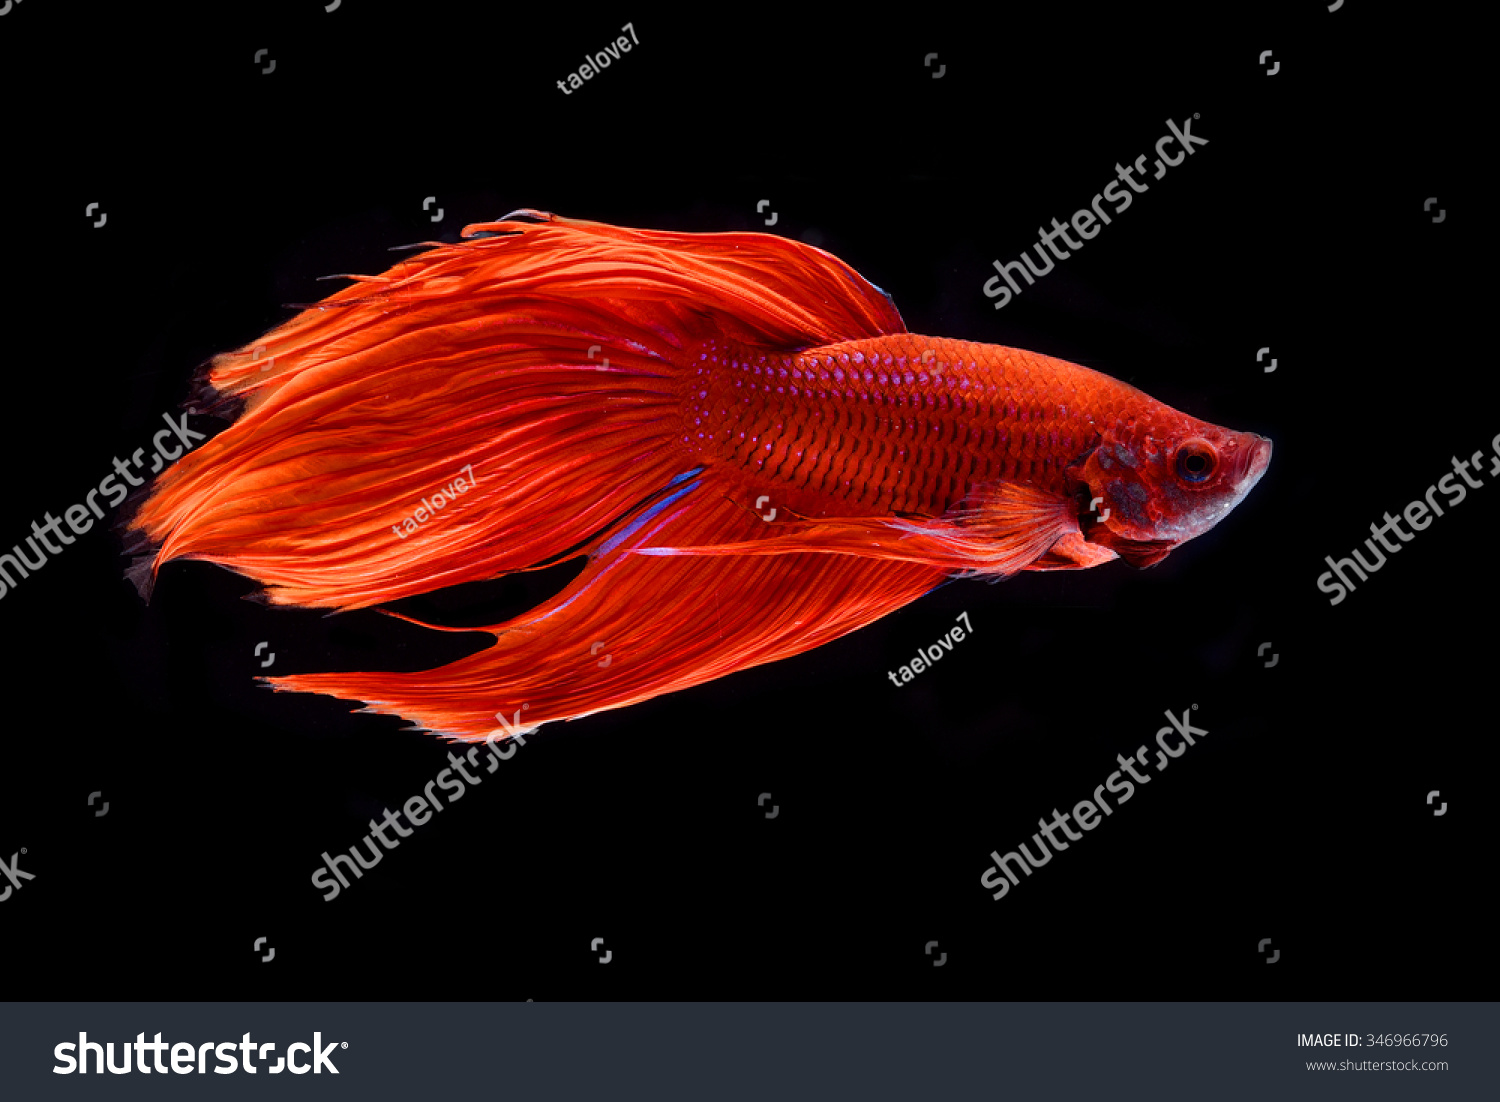 A fighting fish, Betta fish (siamese fighting fish) isolated | EZ Canvas